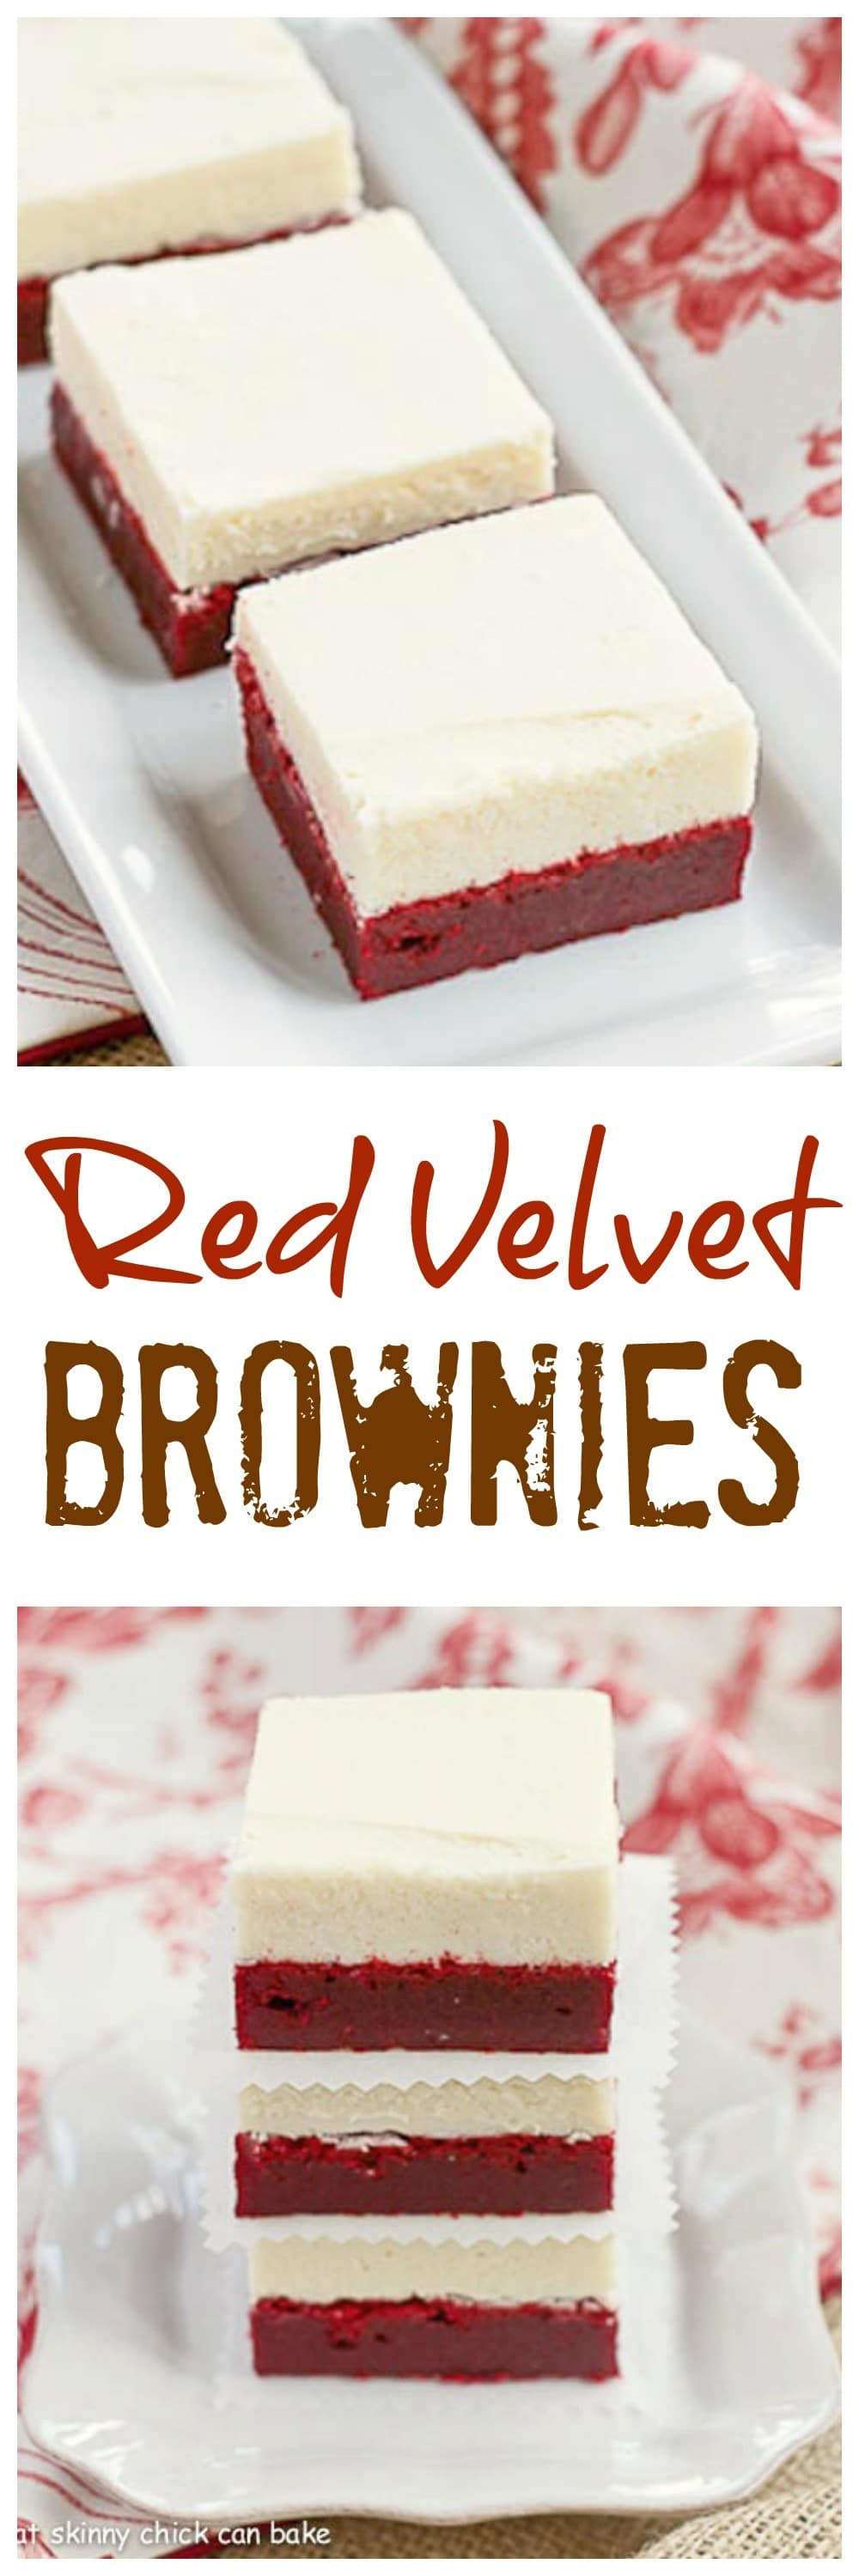 Red Velvet Brownies with White Chocolate Icing - Perfect for Valentine's Day or just because! #redvelvet #brownies #redvelvetdessert #valentinesday